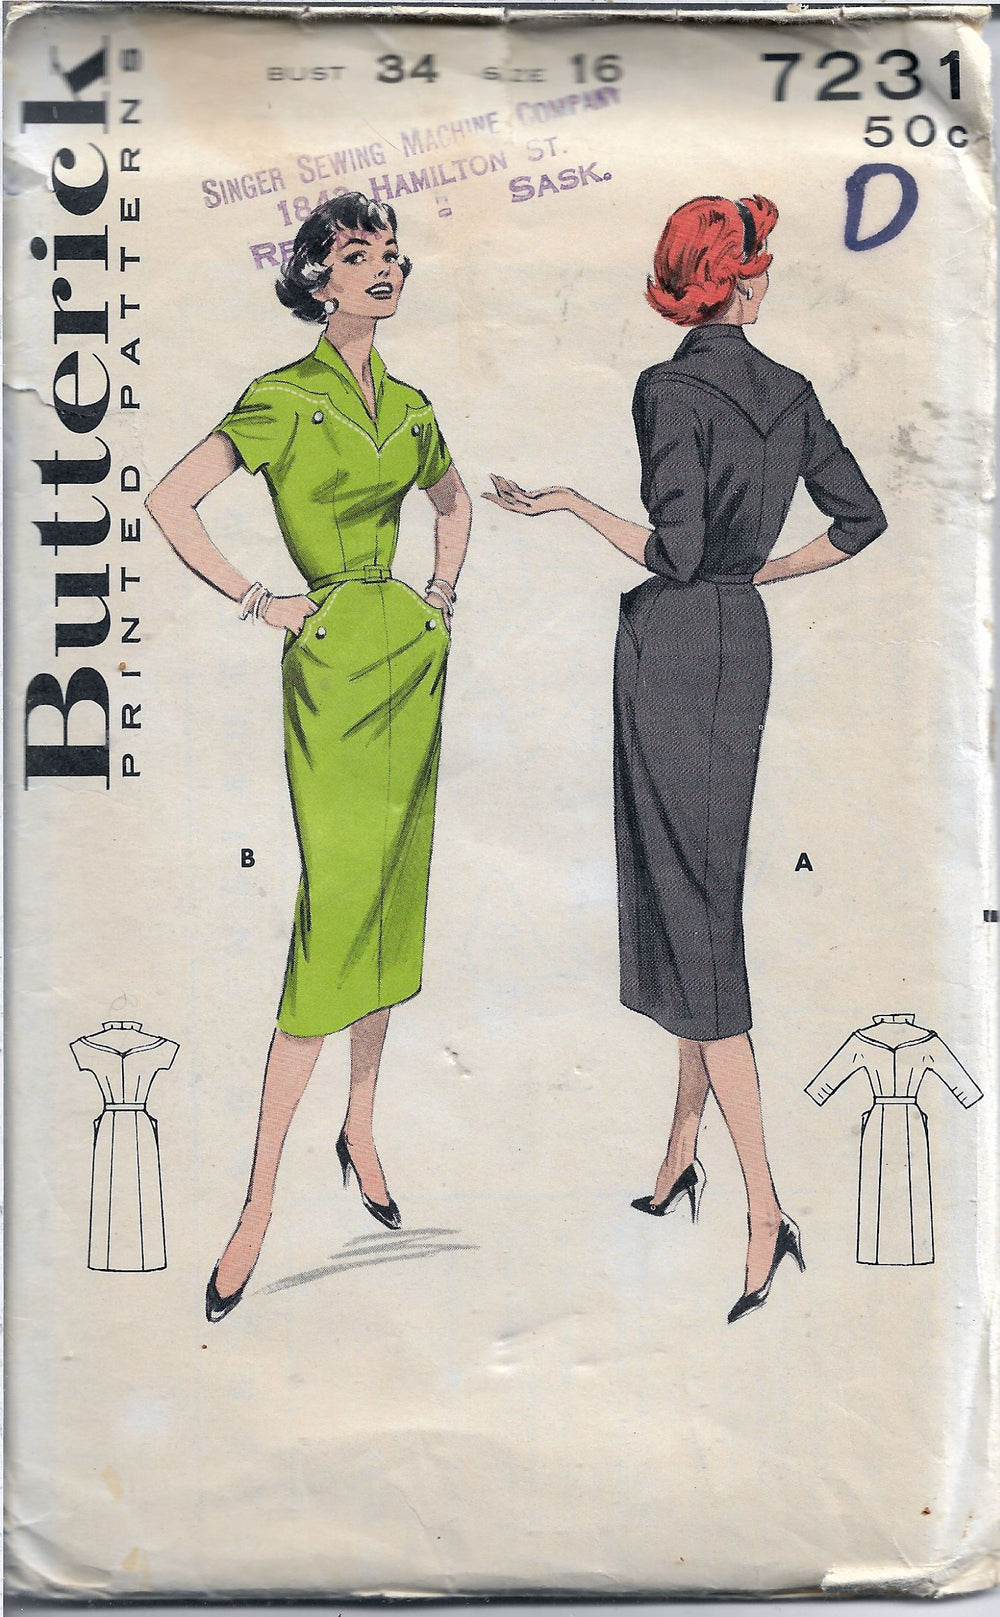 butterick 7231 casual dress vintage 50s pattern